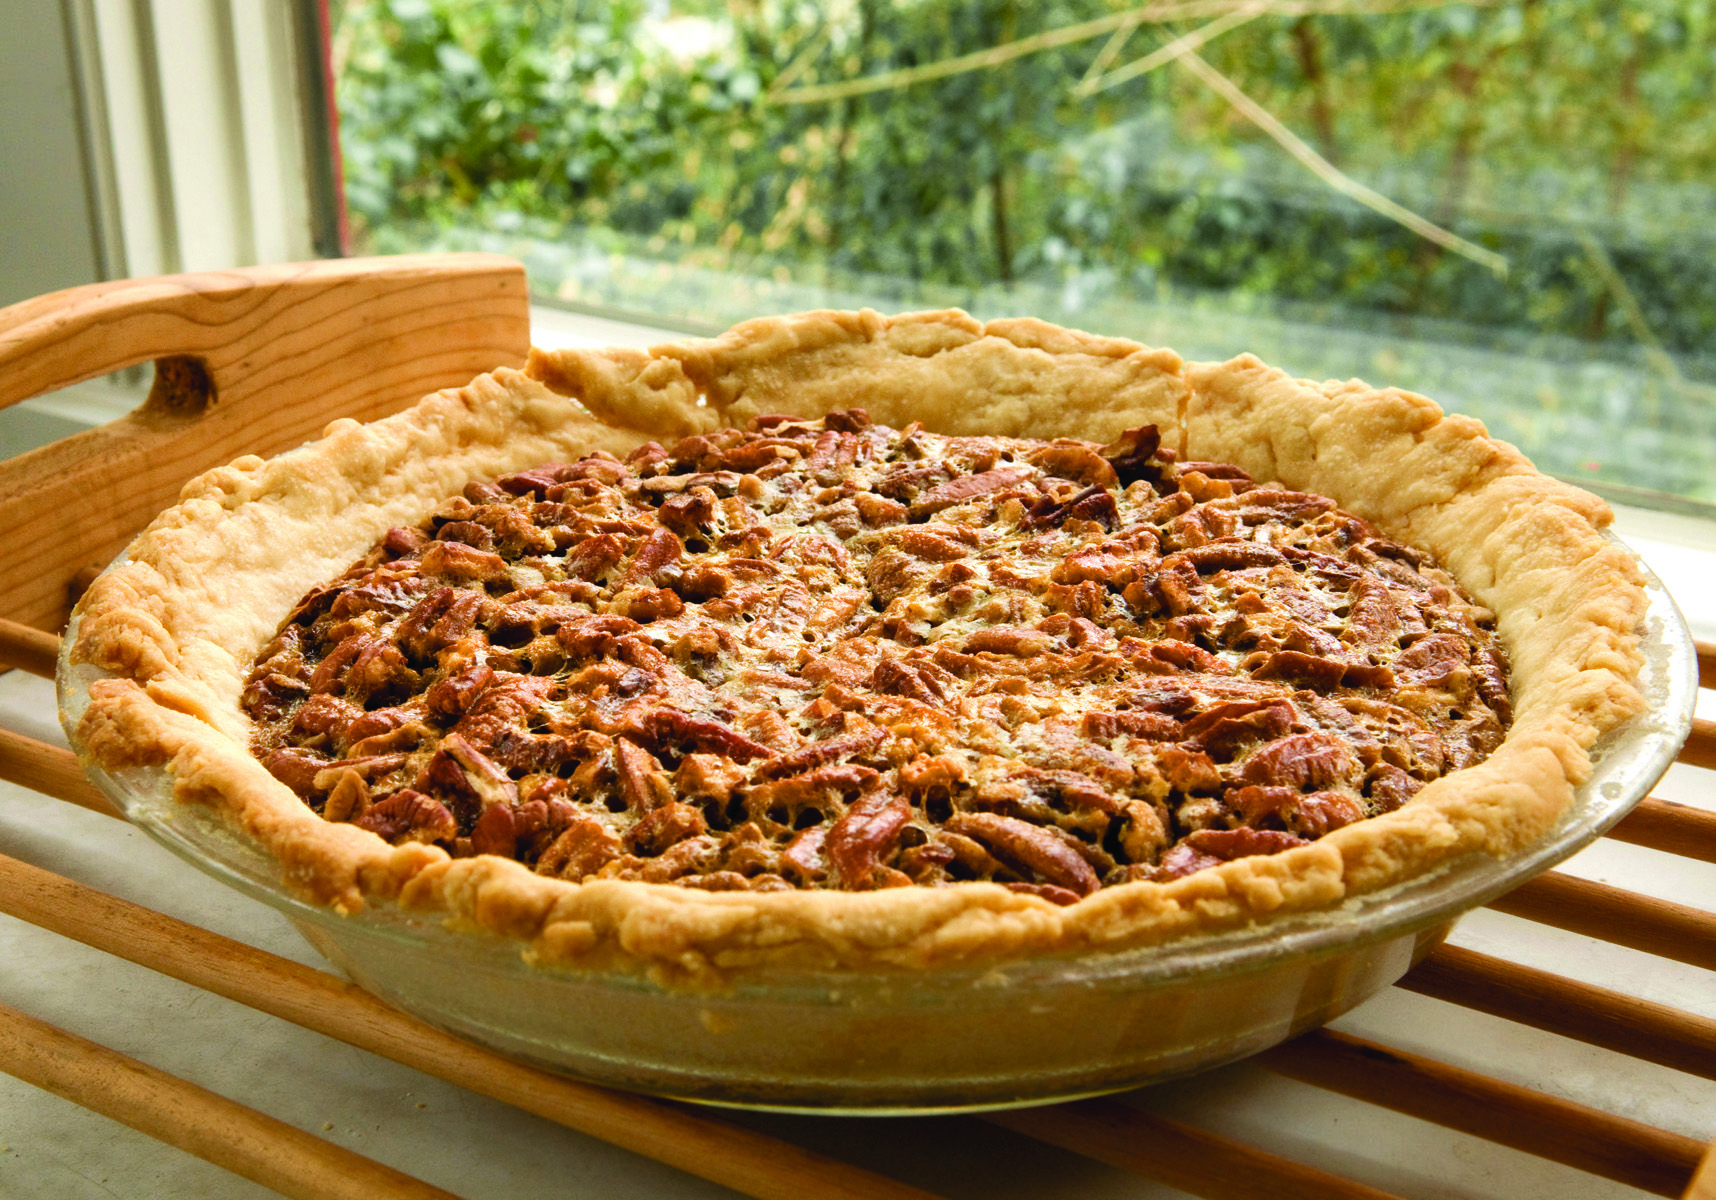 Print Guilt-free Pecan Pie Yield: 8 servings This season, stay on track by serving delicious, calorie-reduced versions of traditional festive desserts. Lightly sweetened with naturally-sourced stevia, this pecan pie will make a tempting addition to any holiday table and appease guests young and old.Ingredients1 refrigerated pie crust from a 15 …